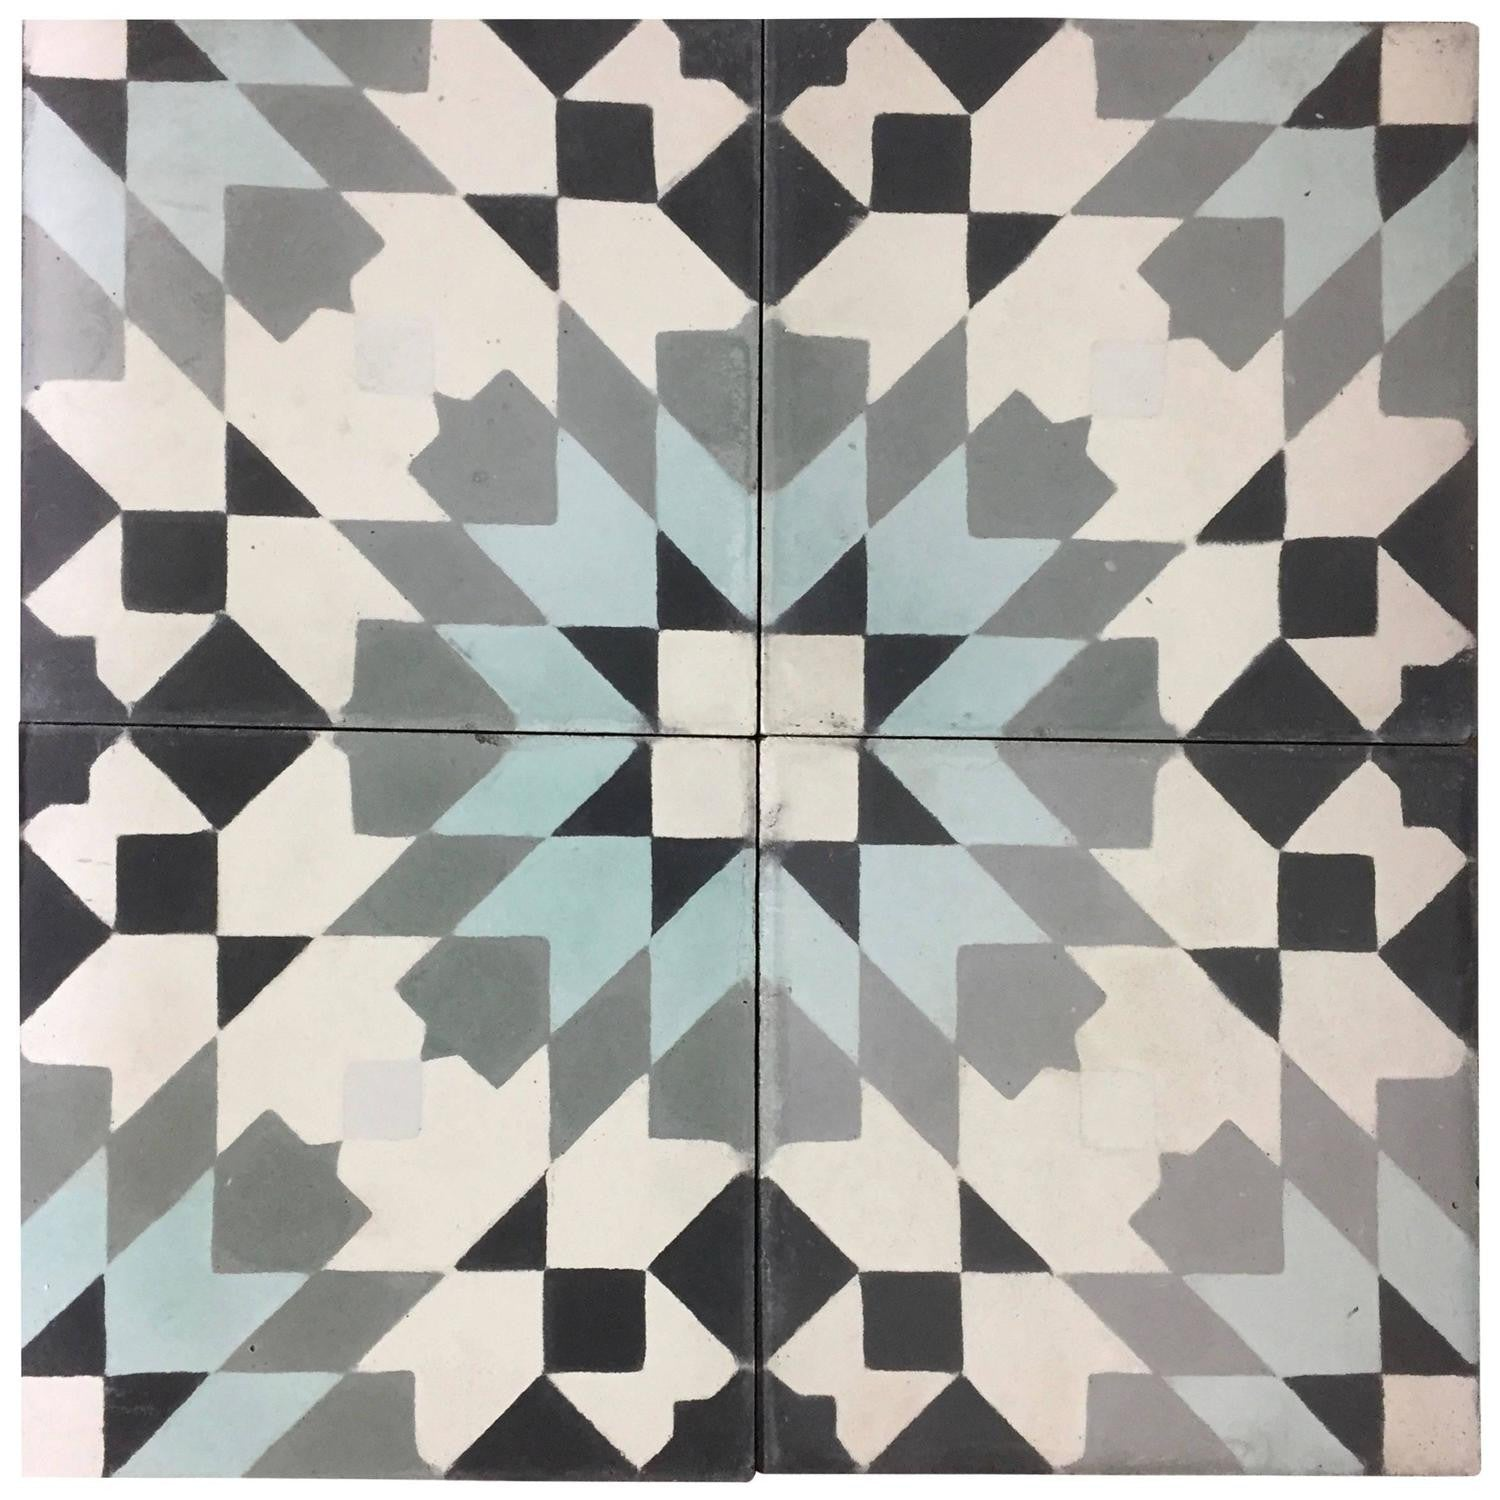 Geo Cement Tiles Black White Grey Blue - Haskell Antiques